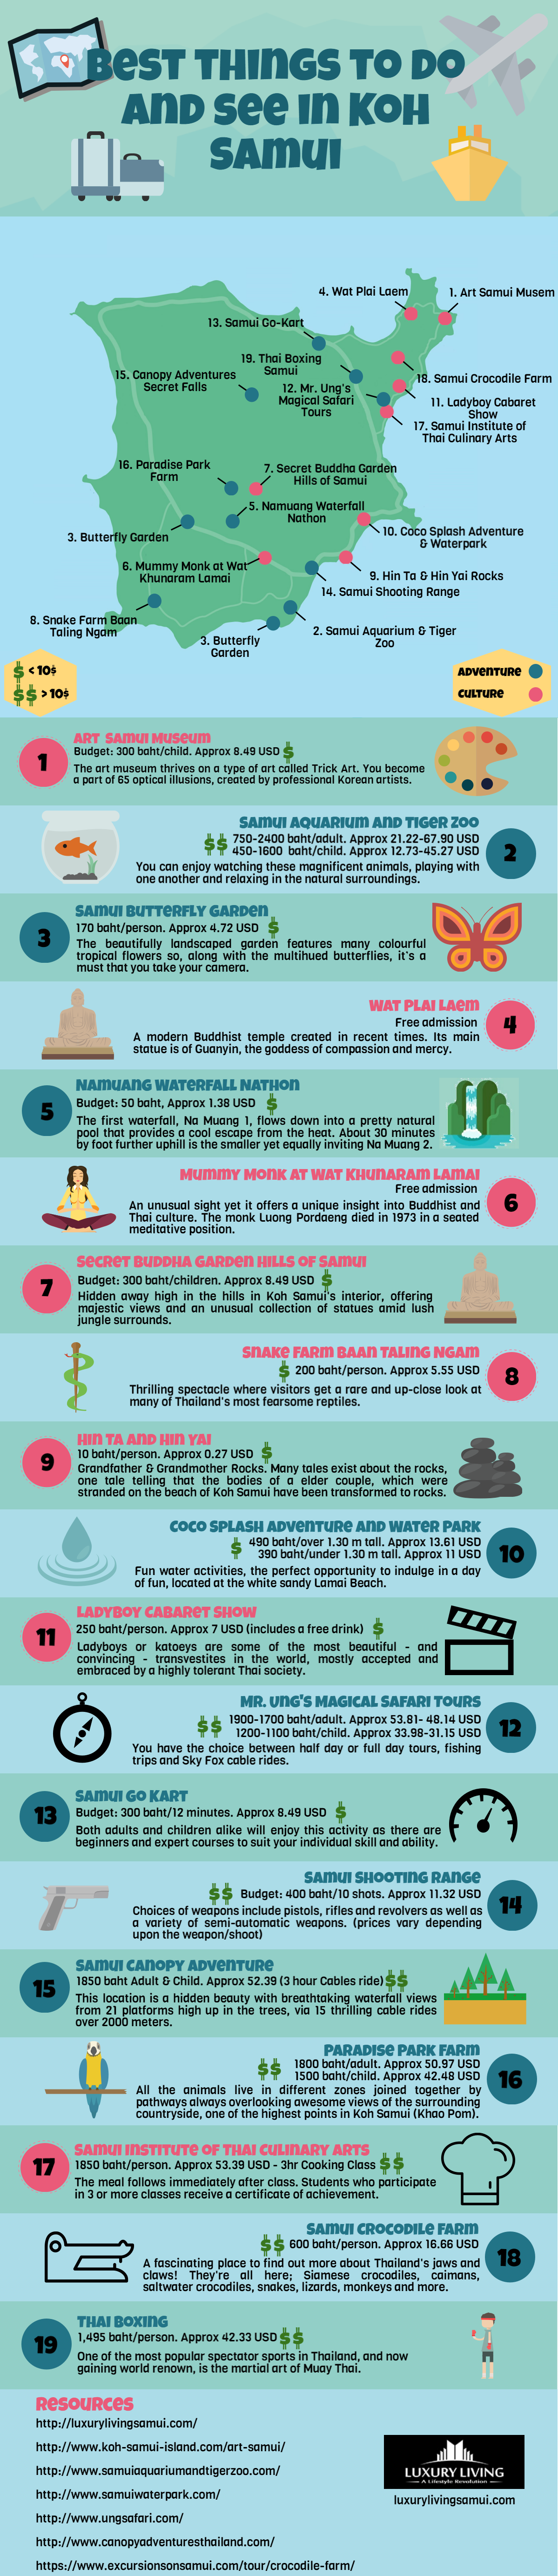 Fun Things To Do In Koh Samui Infographic